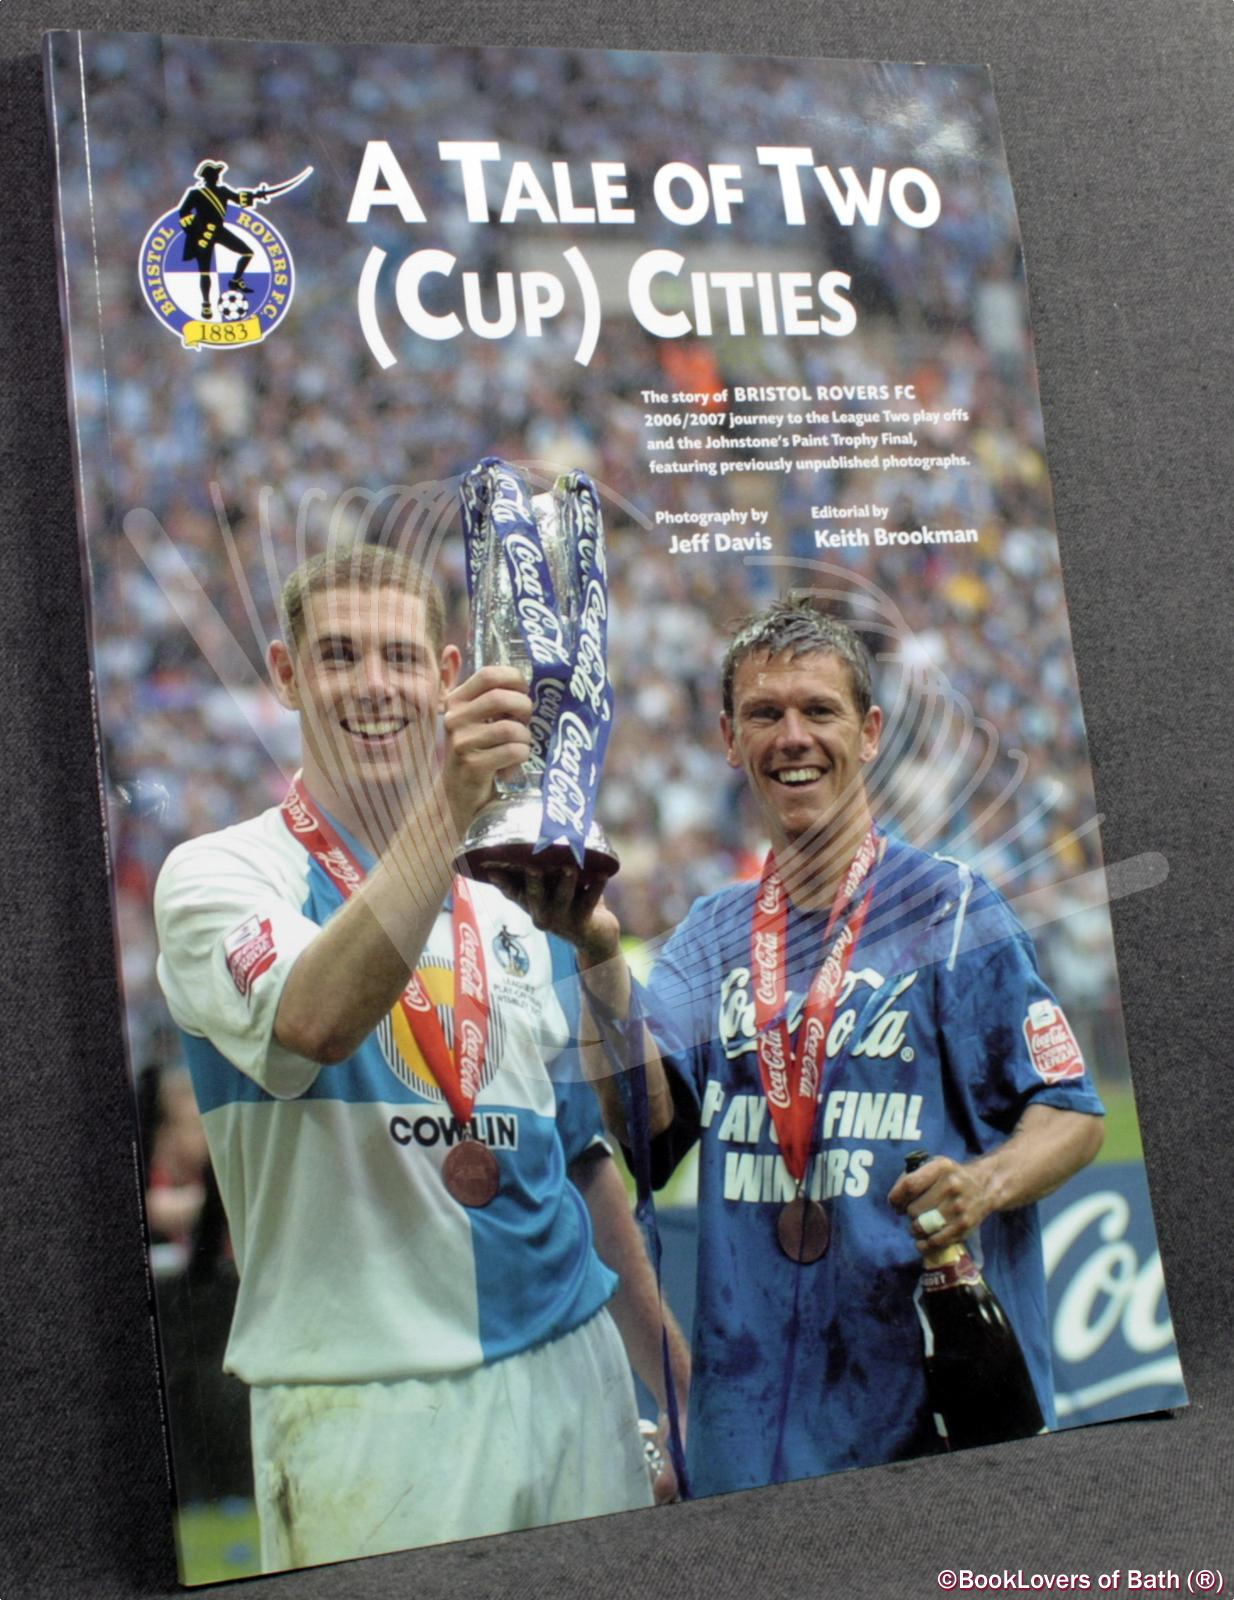 A Tale of Two (Cup) Cities - Keith Brookman